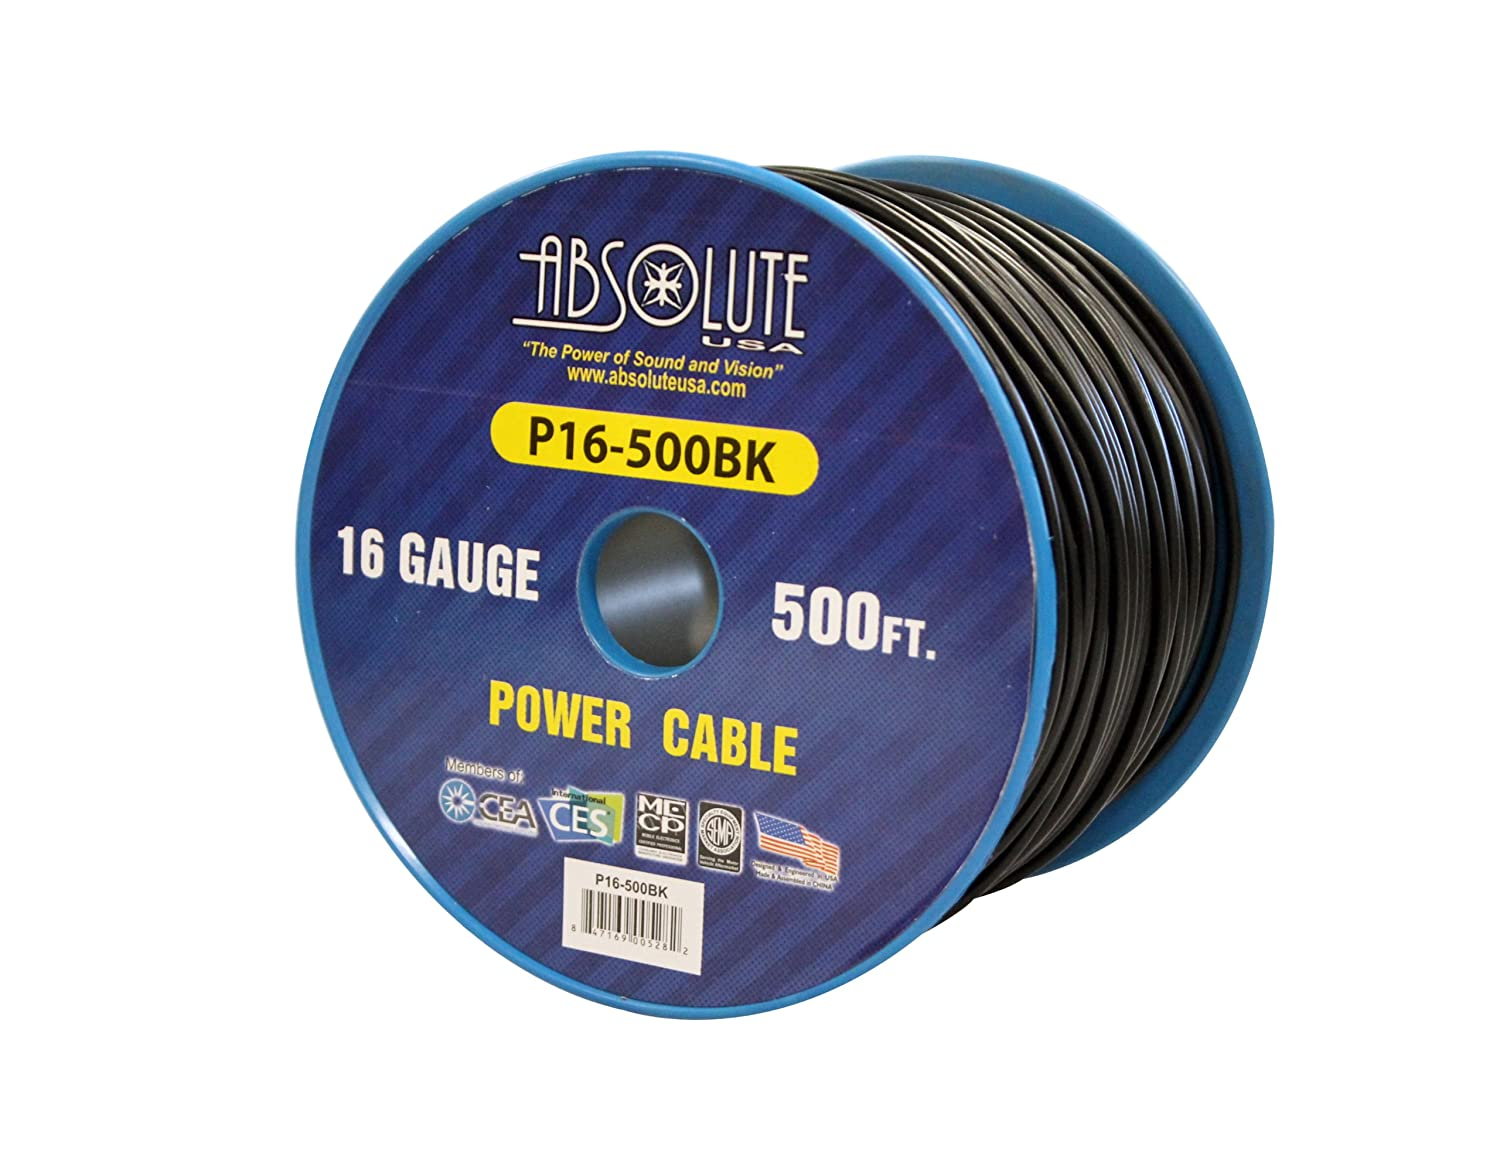 Absolute USA P16-500BK 16 Gauge 500-Feet Spool Primary Power Wire Cable (Black)